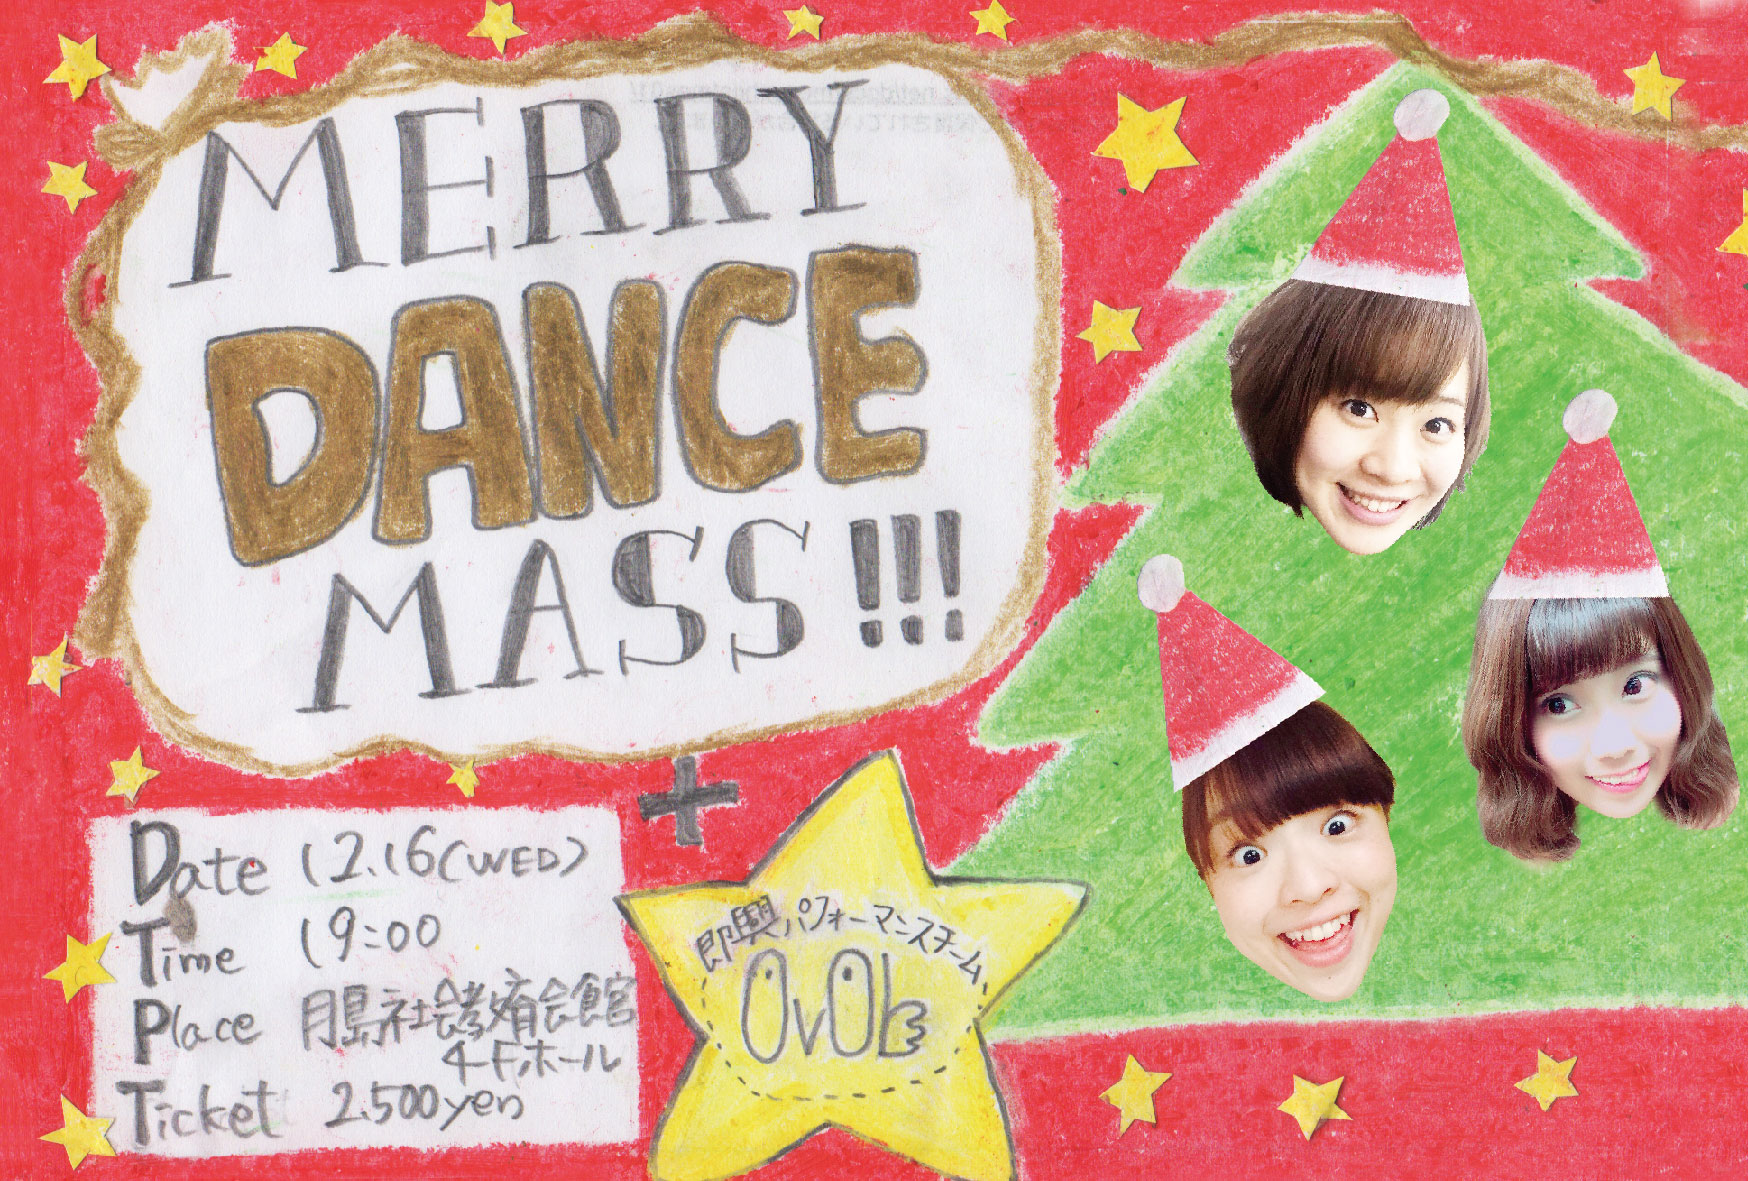 MERRY DANCE MASS!!! + OvOb表